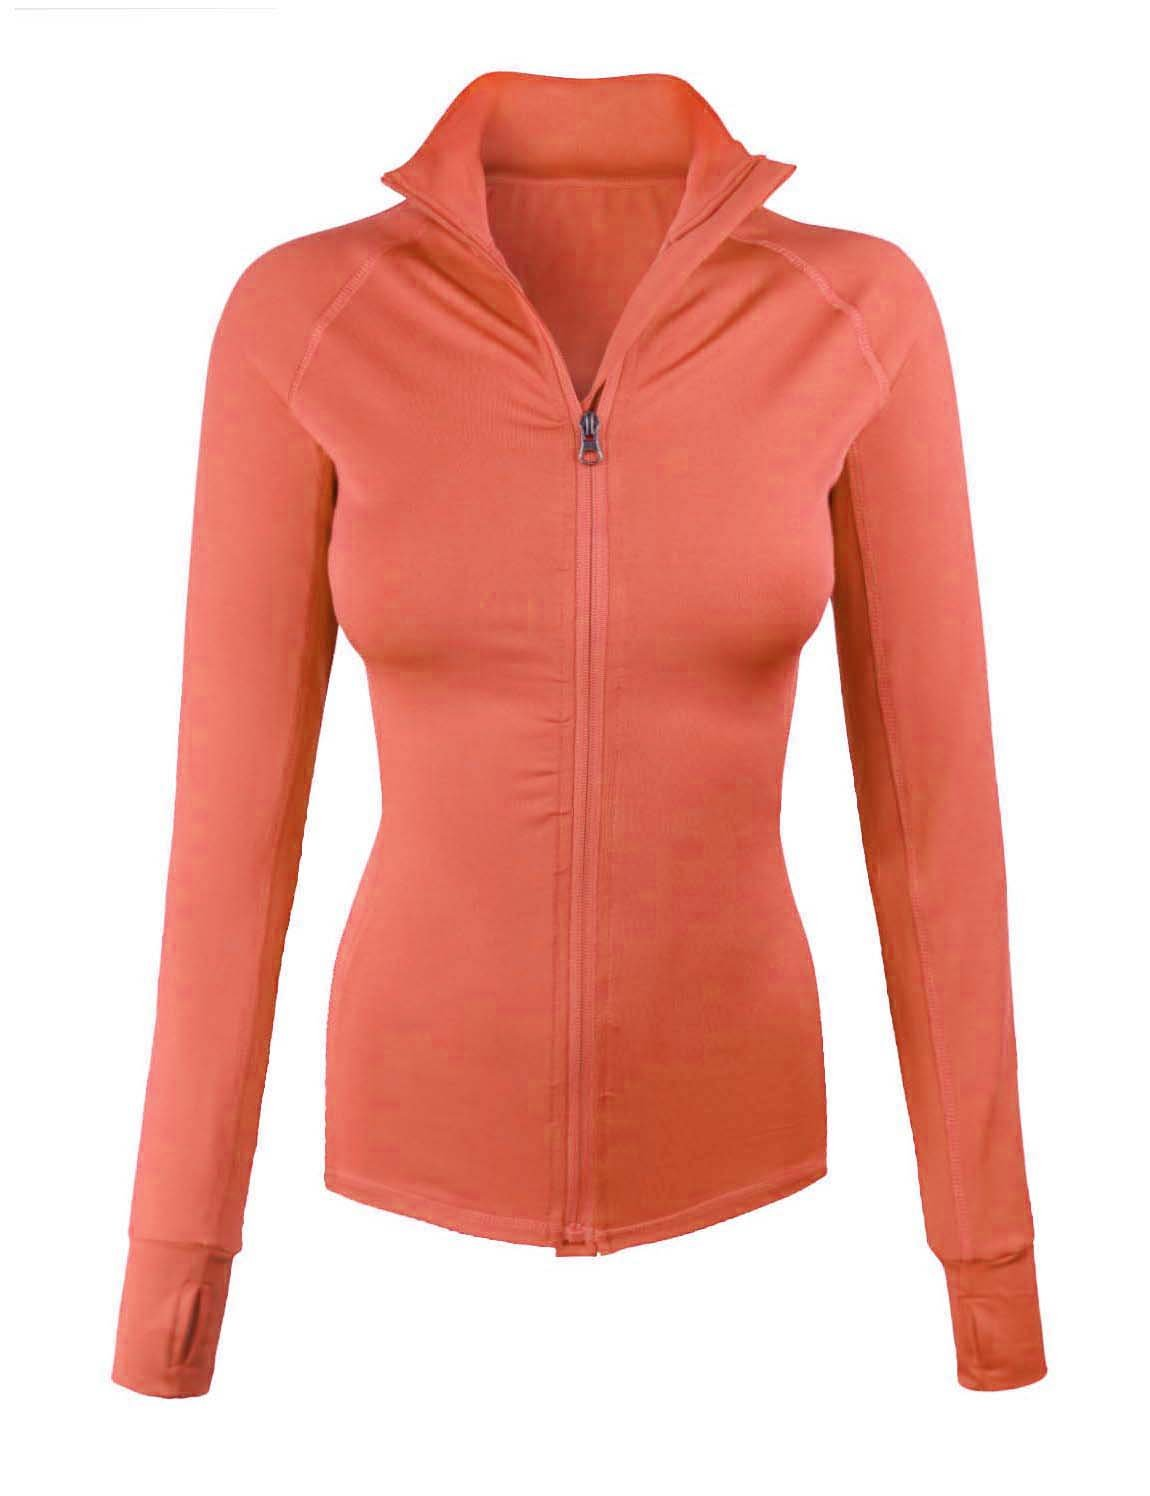 makeitmint Women's Comfy Zip Up Stretchy Work Out Track Jacket w/ Back Pocket SMALL YJZ0002_02DROSE